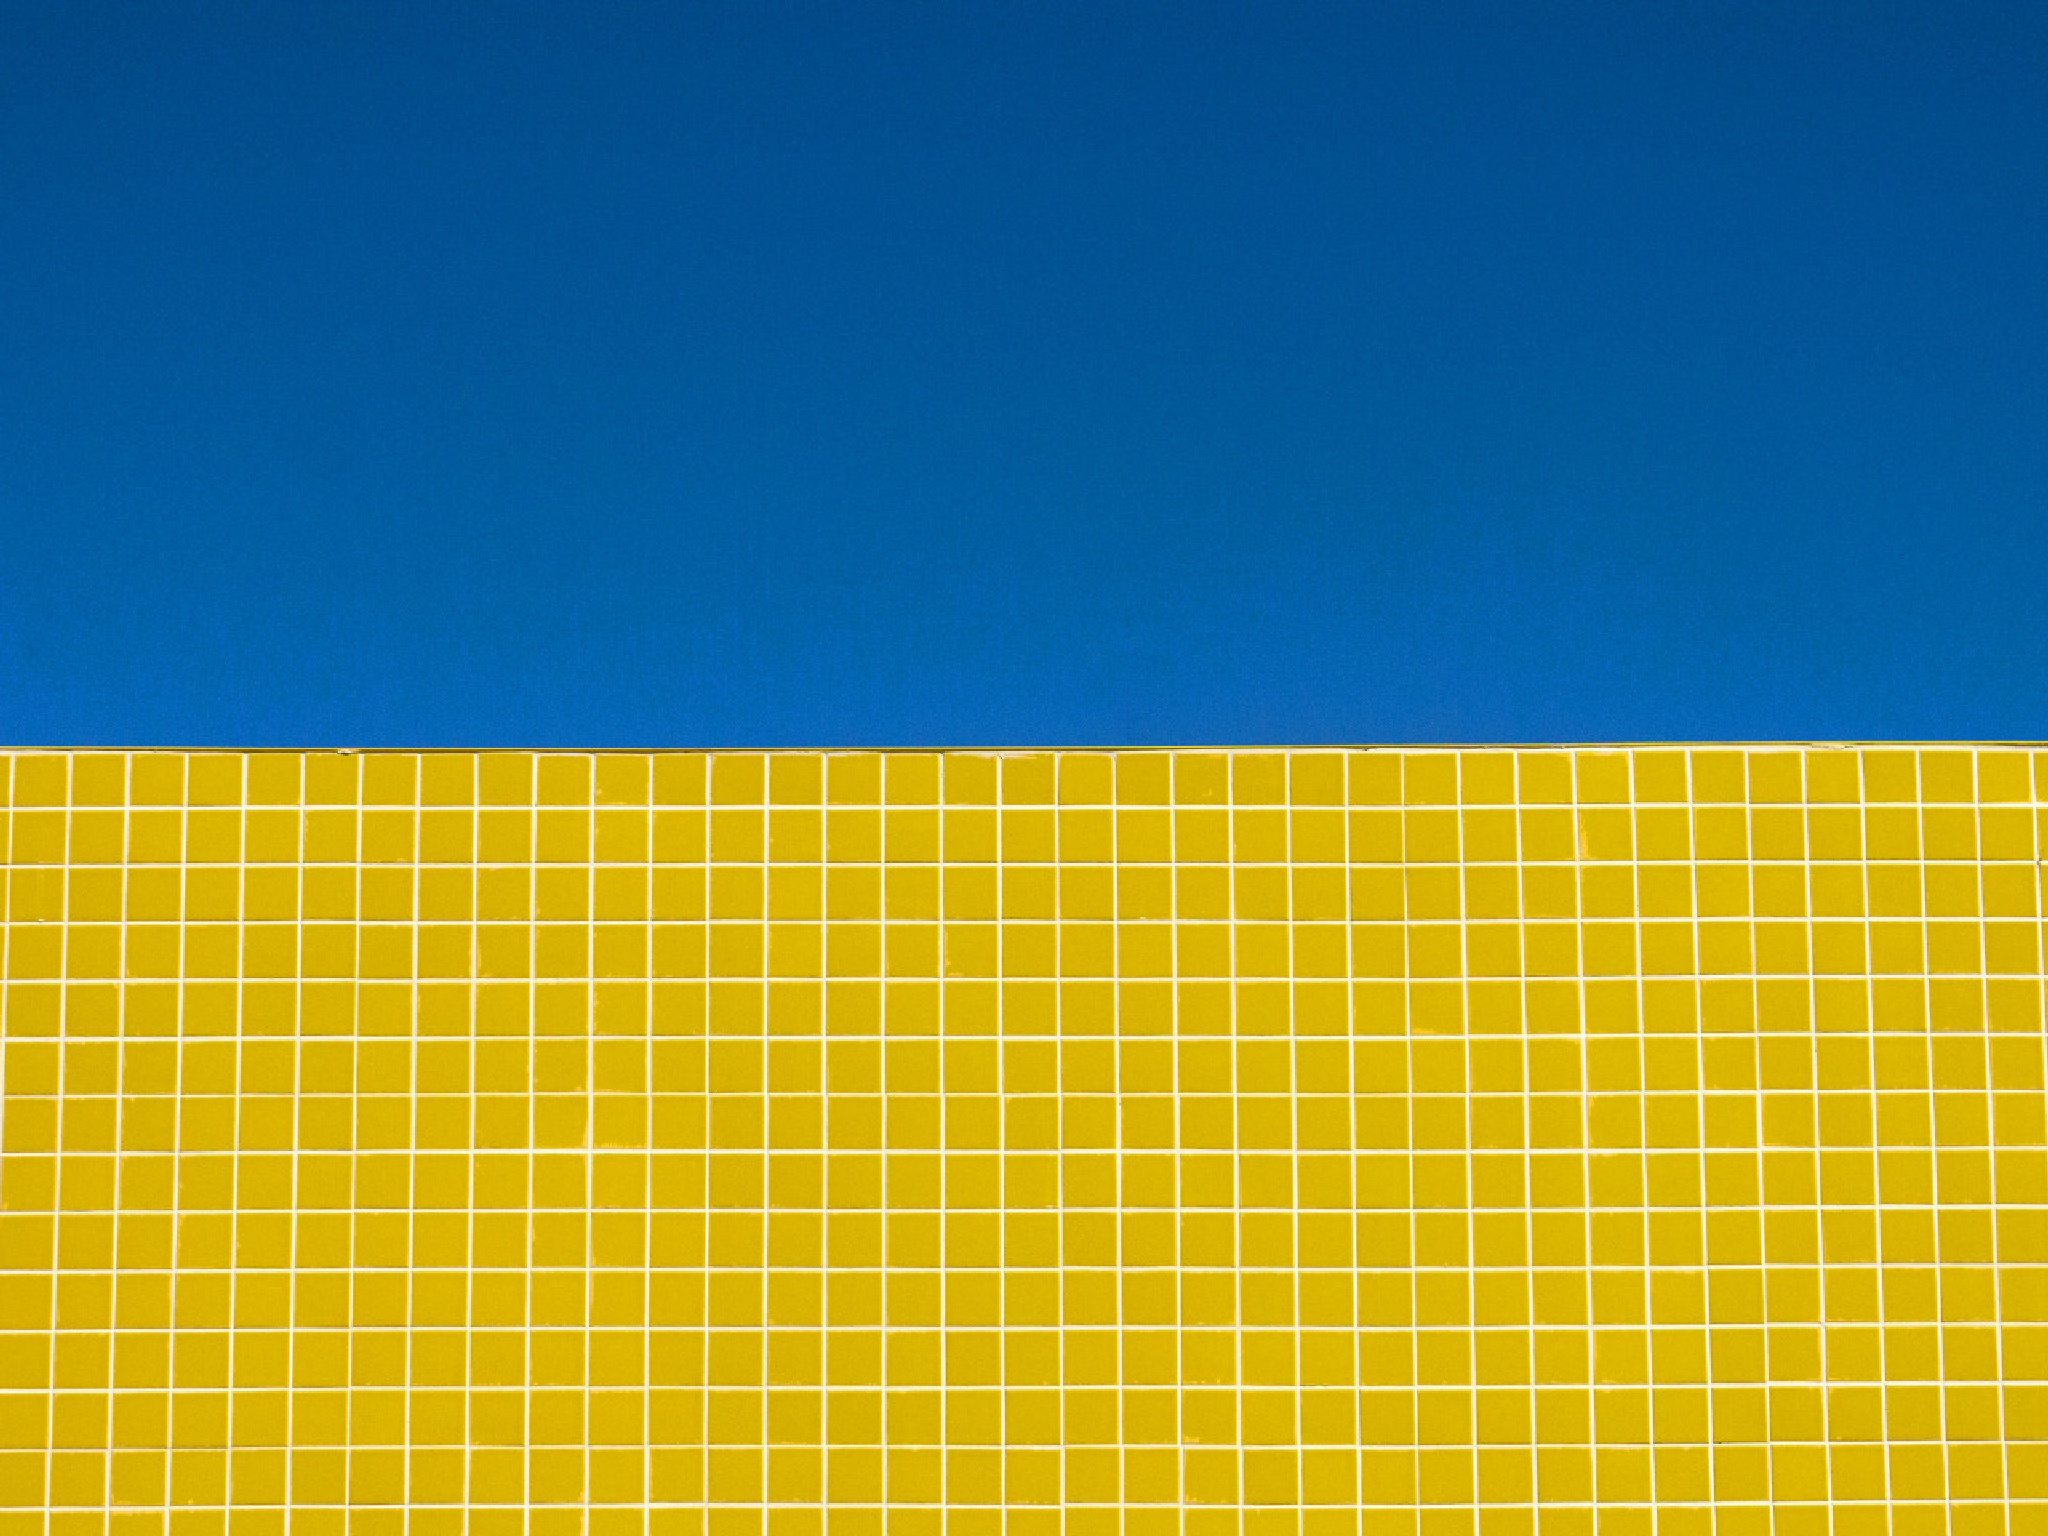 Yellow and Blue by mistaone